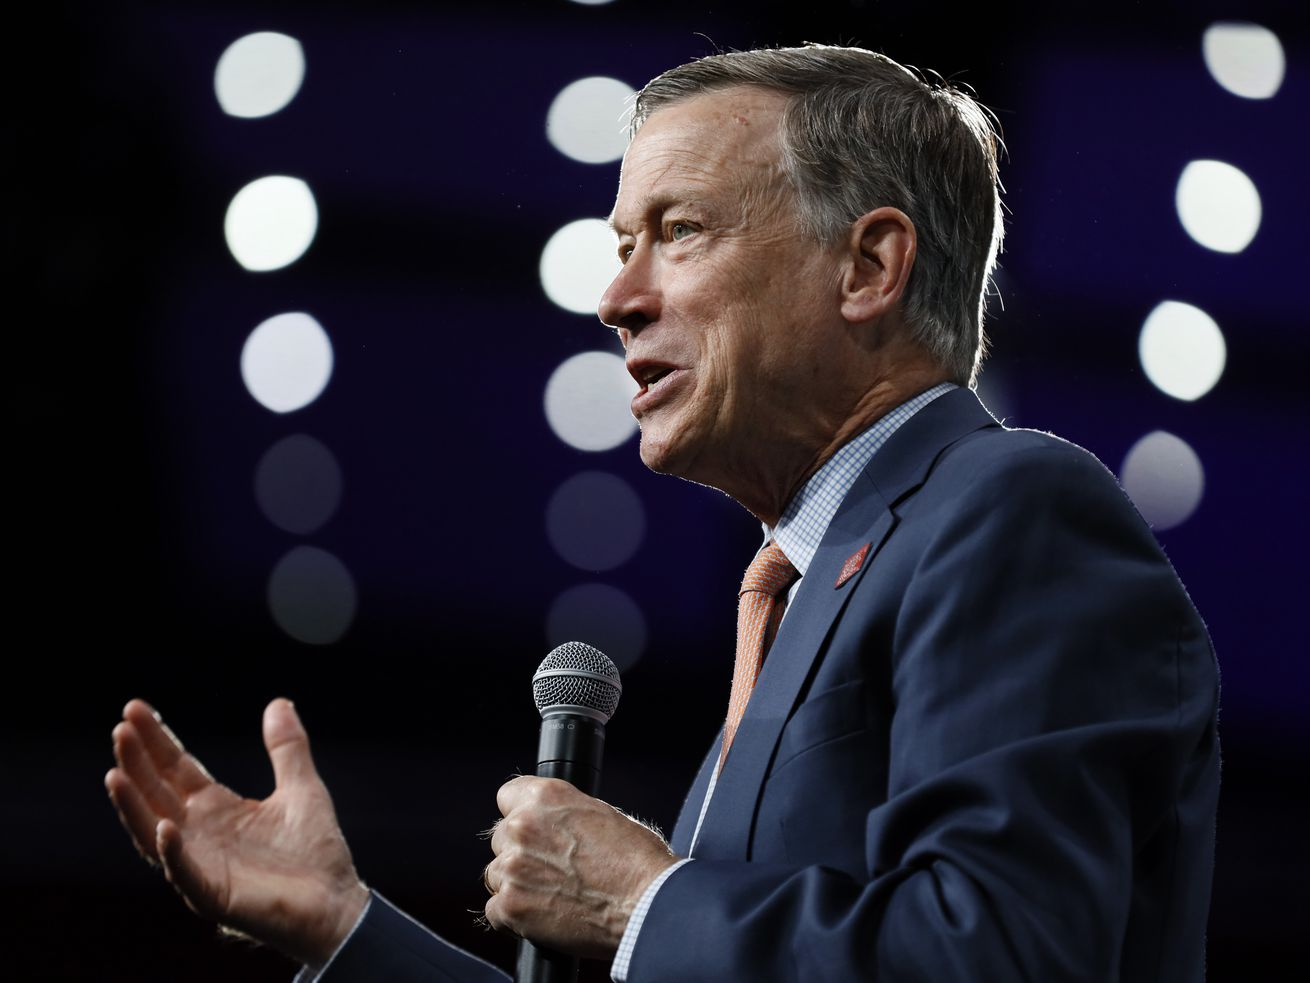 Hickenlooper ends White House bid, mulls Senate run in 2020